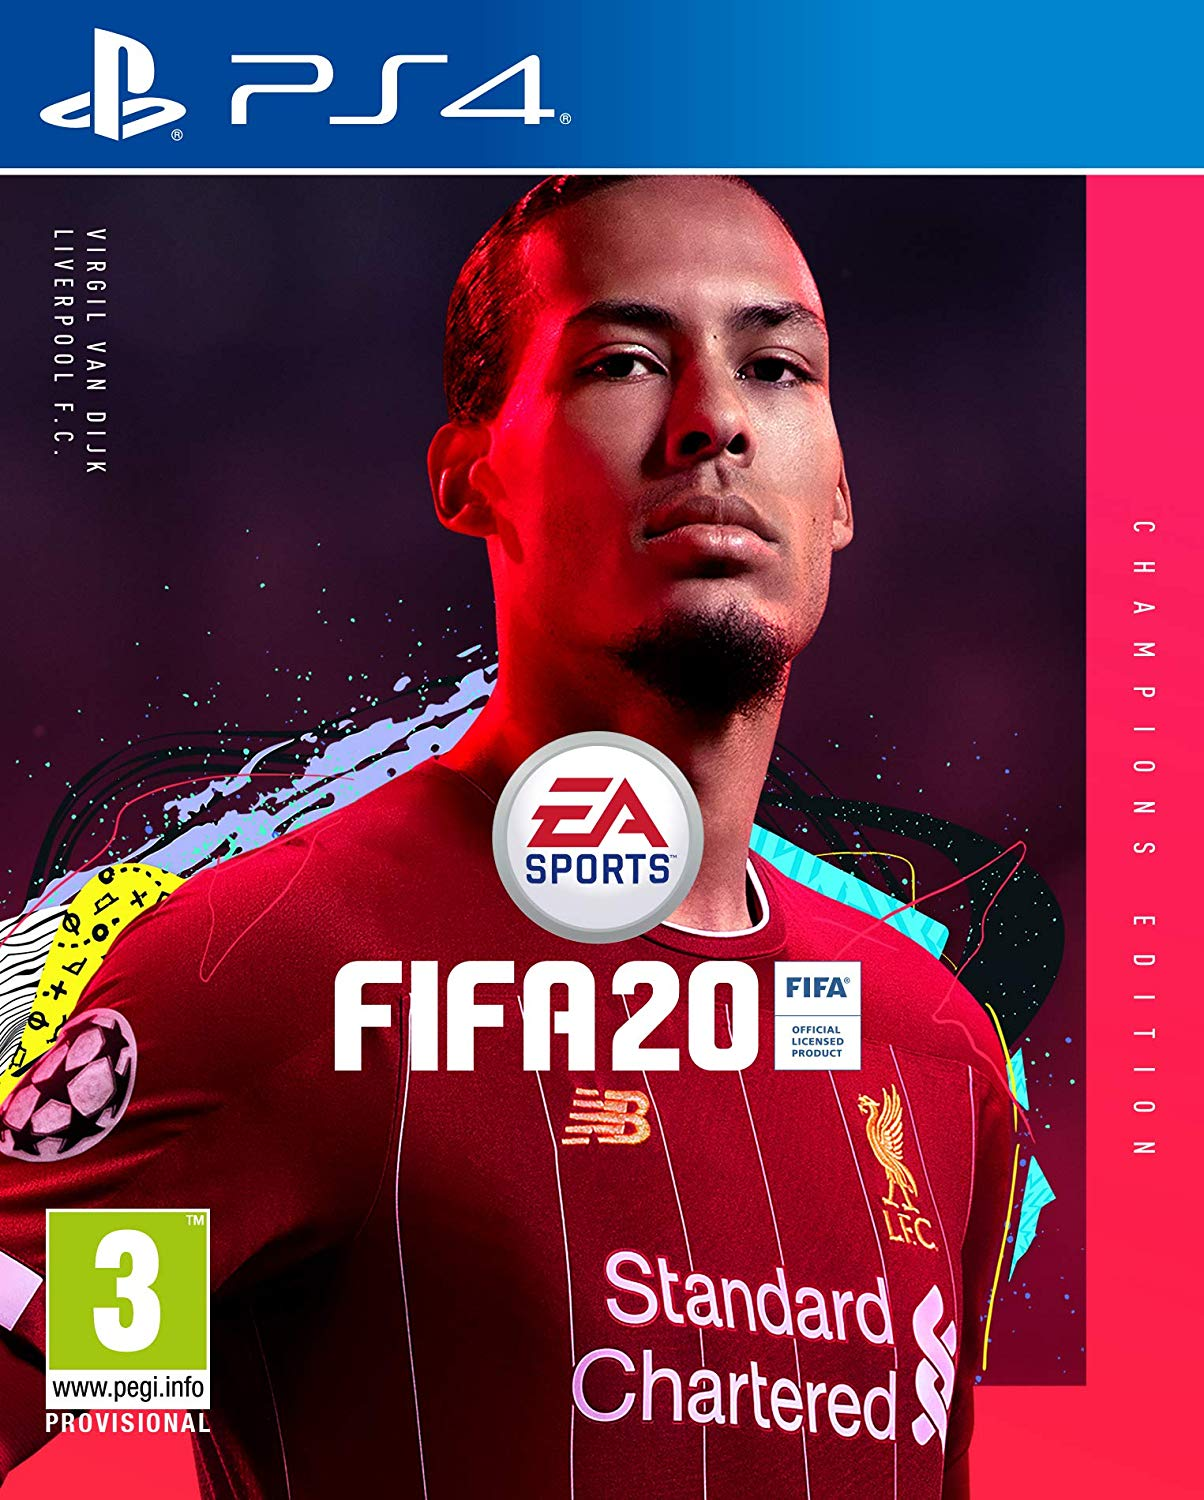 fifa 30 - 7 Key Things To Know About FIFA 2020 Coming This September